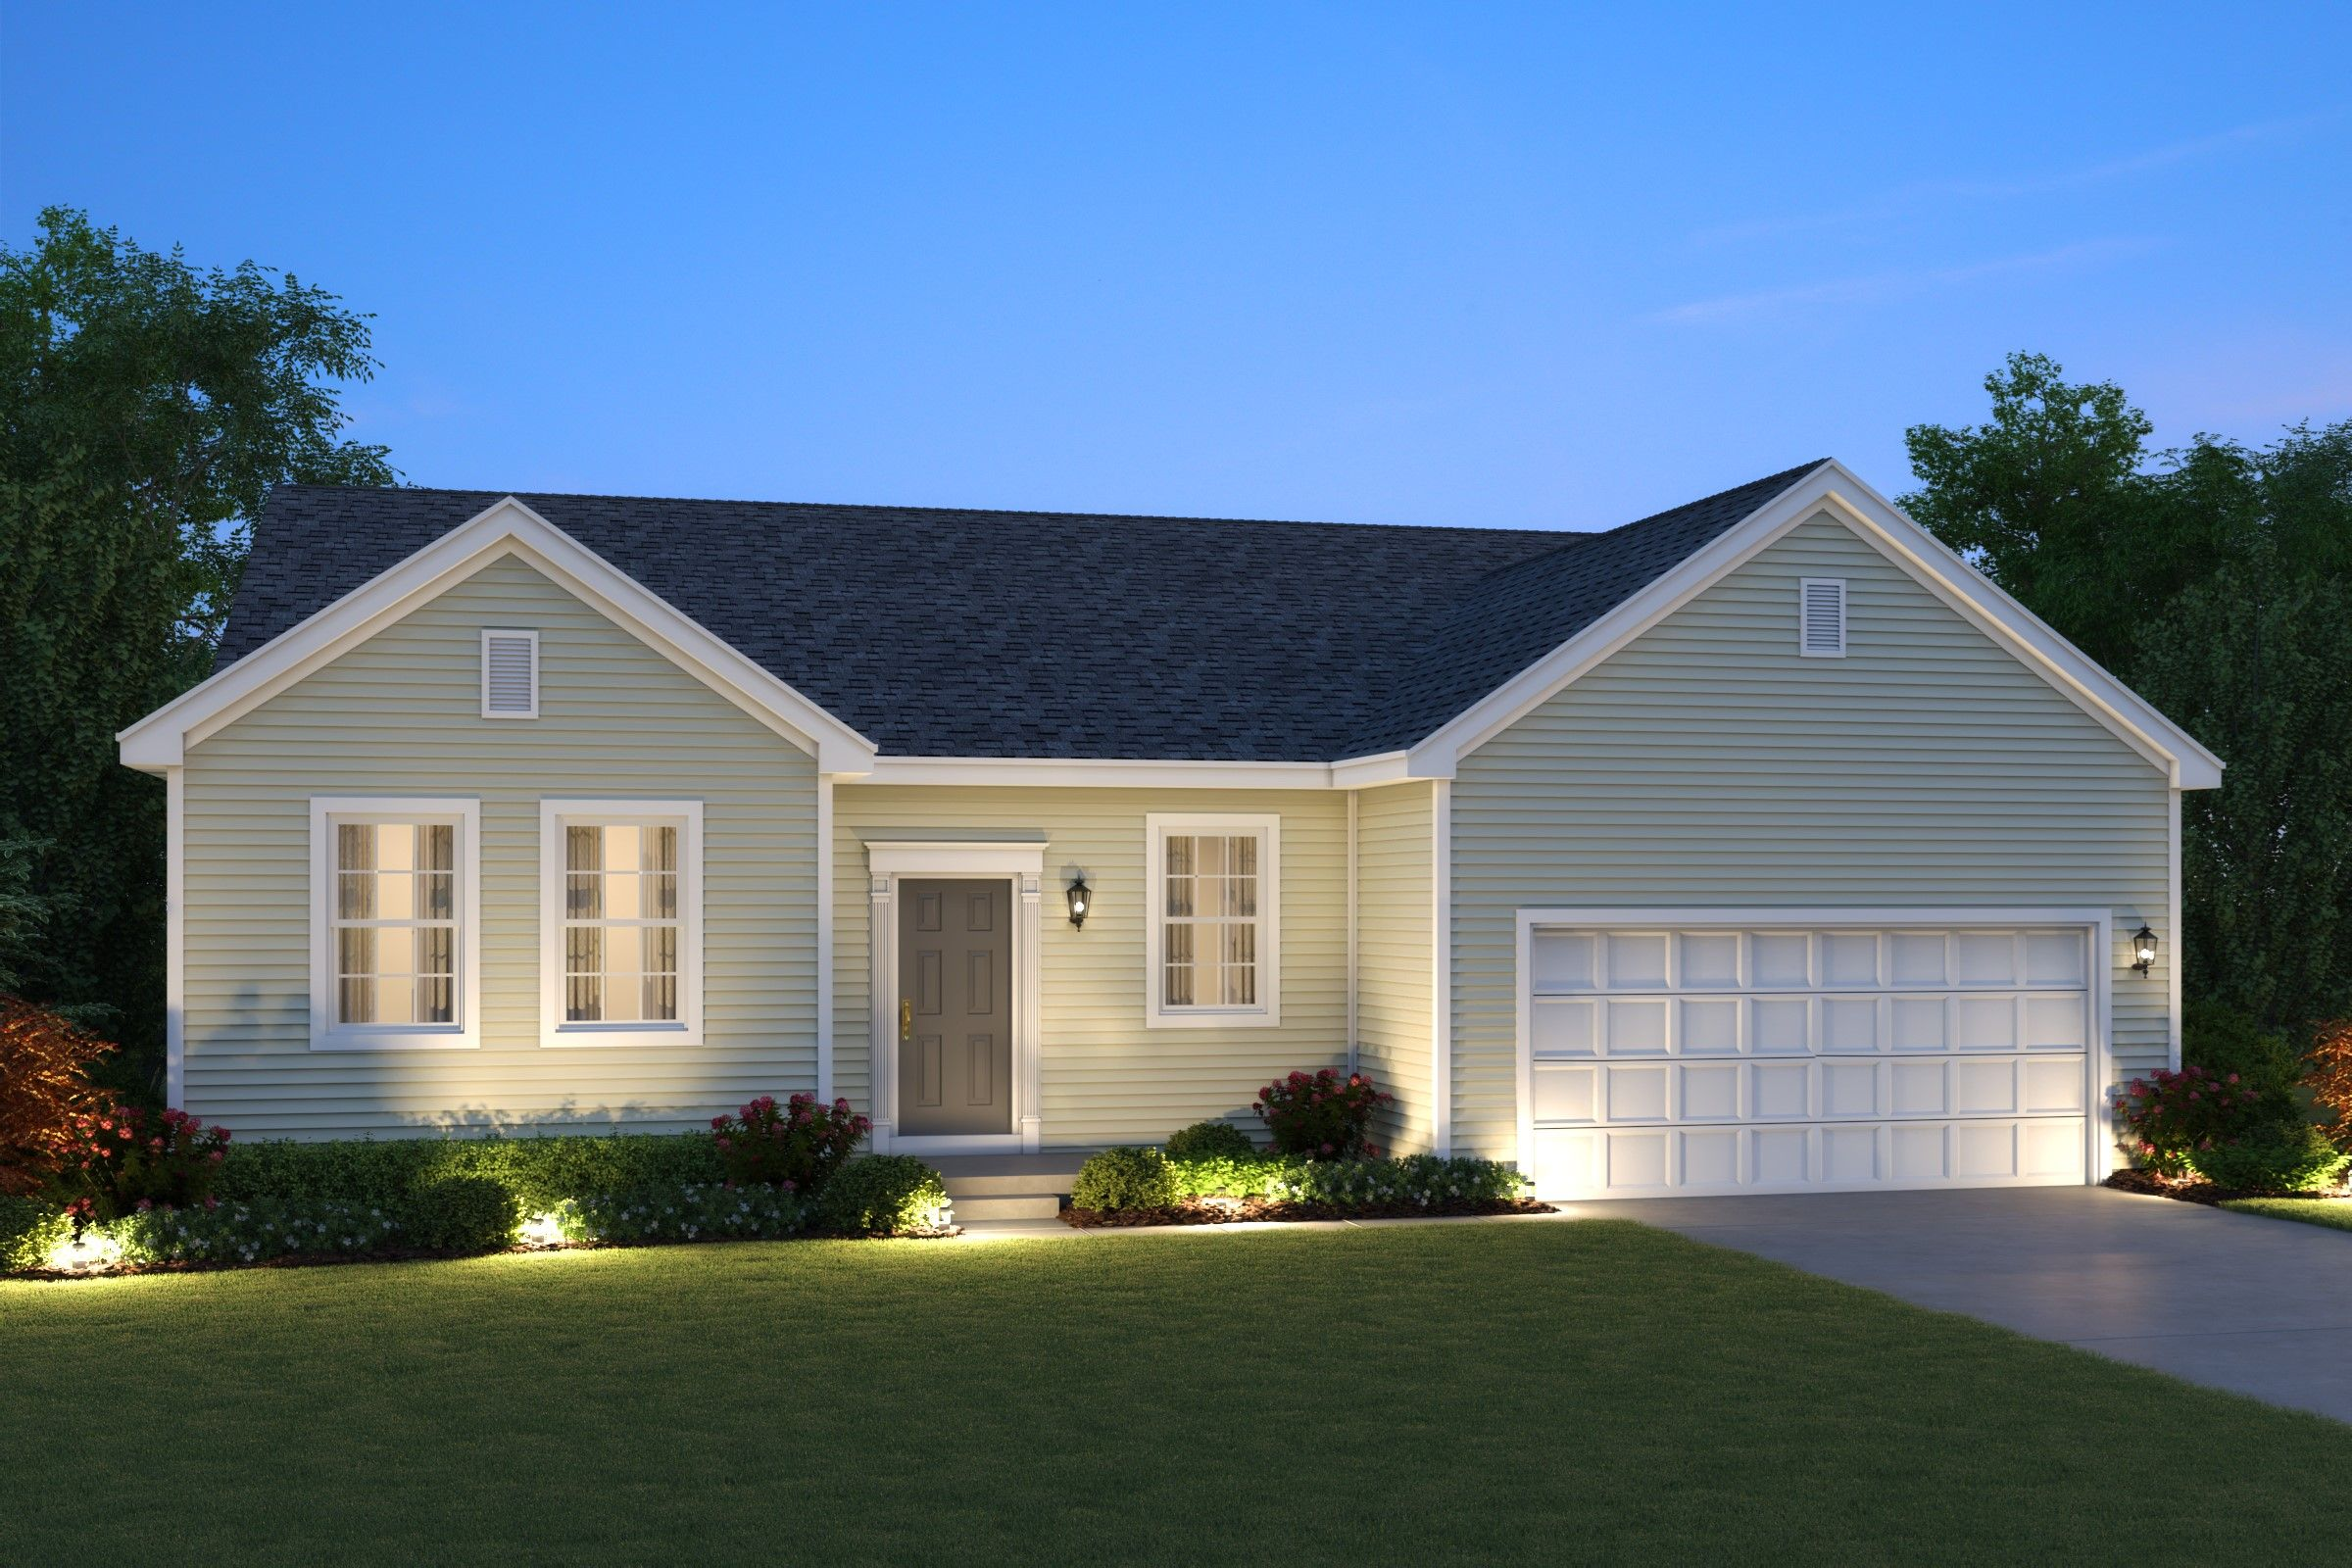 Single Family for Sale at North Grove Crossing - St. Michaels 853 Alden Drive Sycamore, Illinois 60178 United States